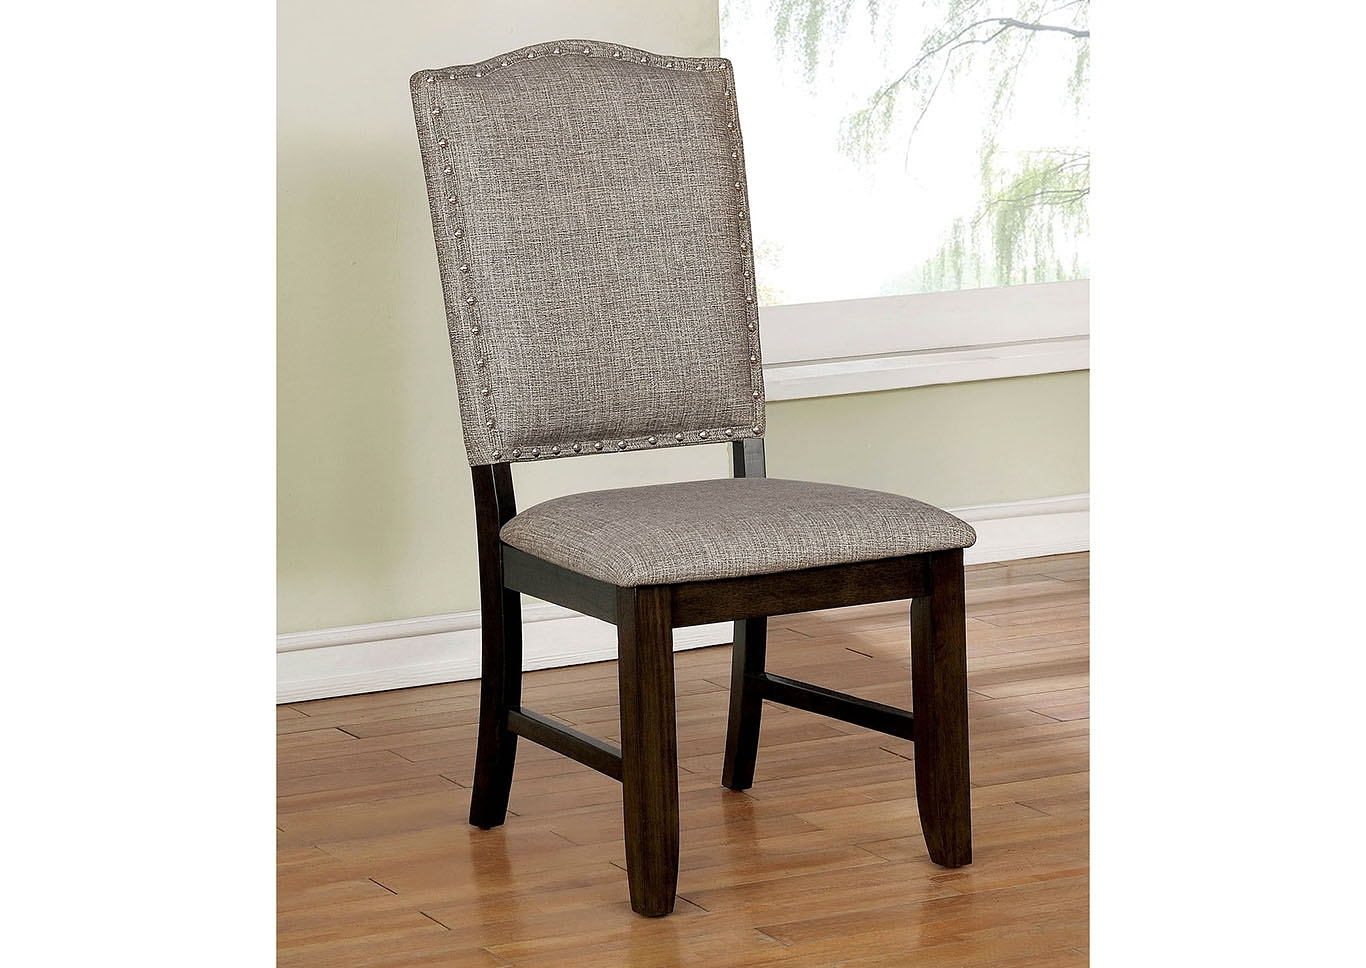 Beverly Hills Furniture Queens Teagan Side Chair (2/ctn) Throughout Most Popular Teagan Extension Dining Tables (View 17 of 20)